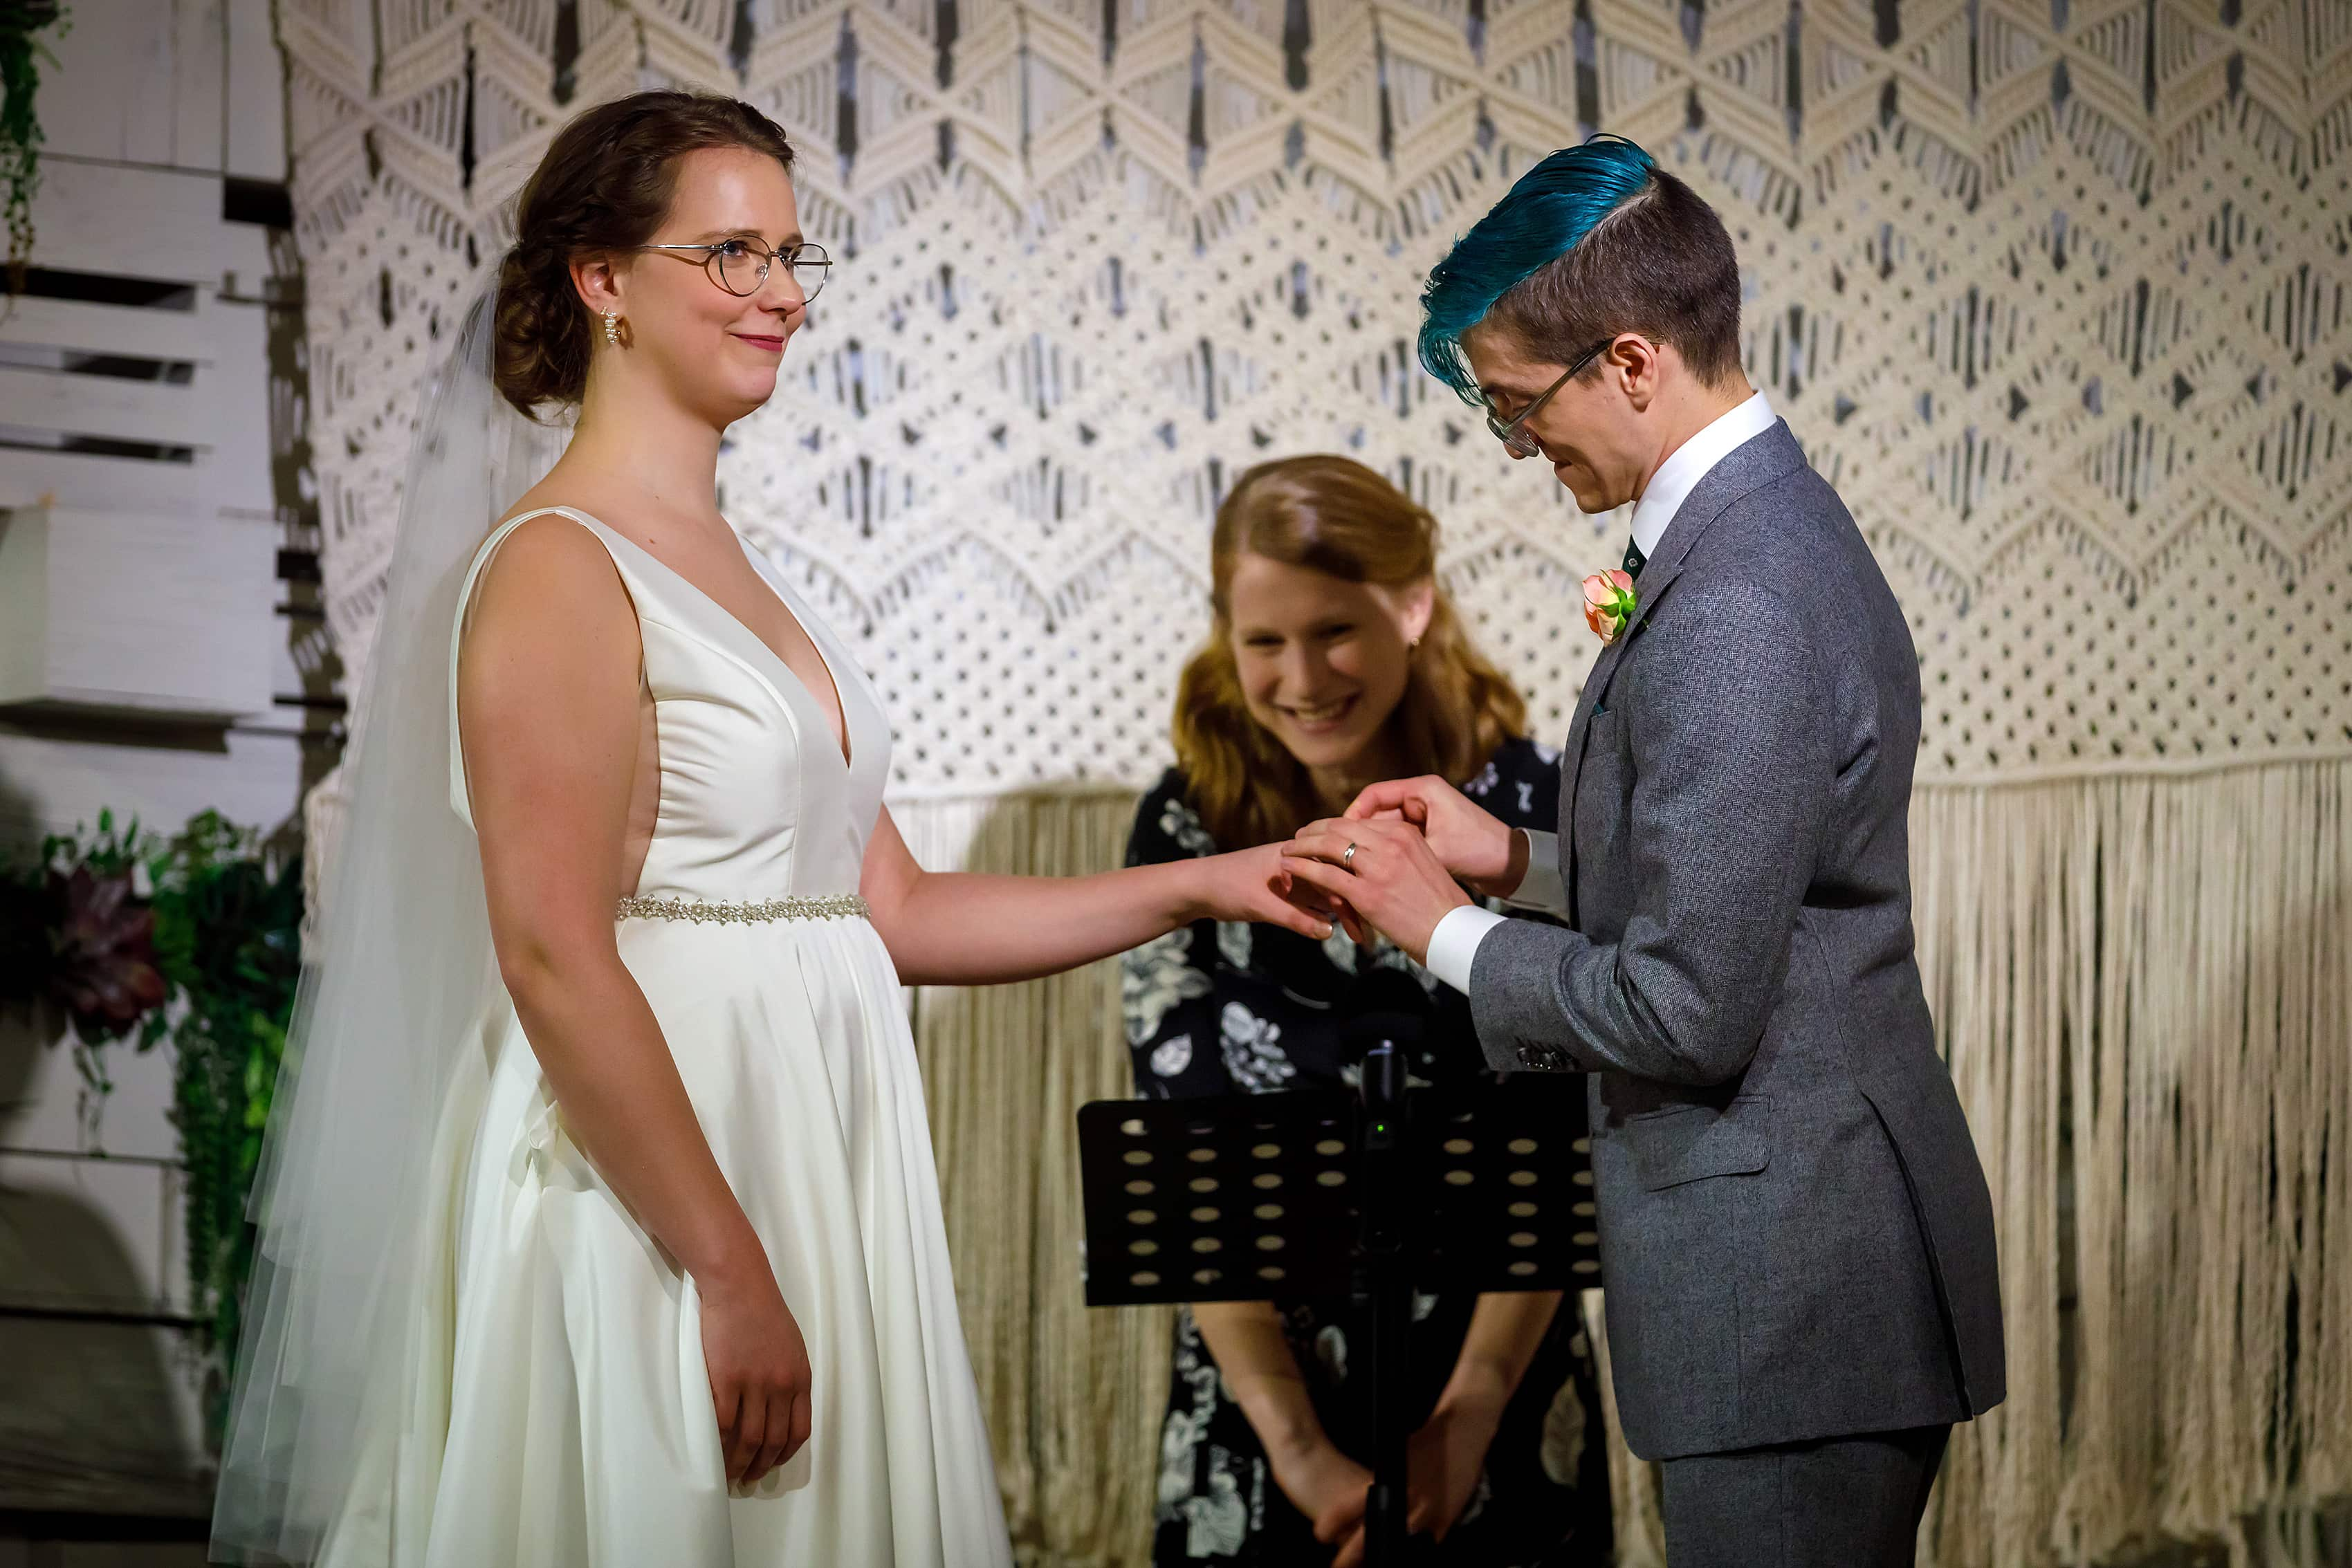 bride and groom exchange rings during wedding ceremony at Rust Belt Market in downtown Ferndale, Michigan